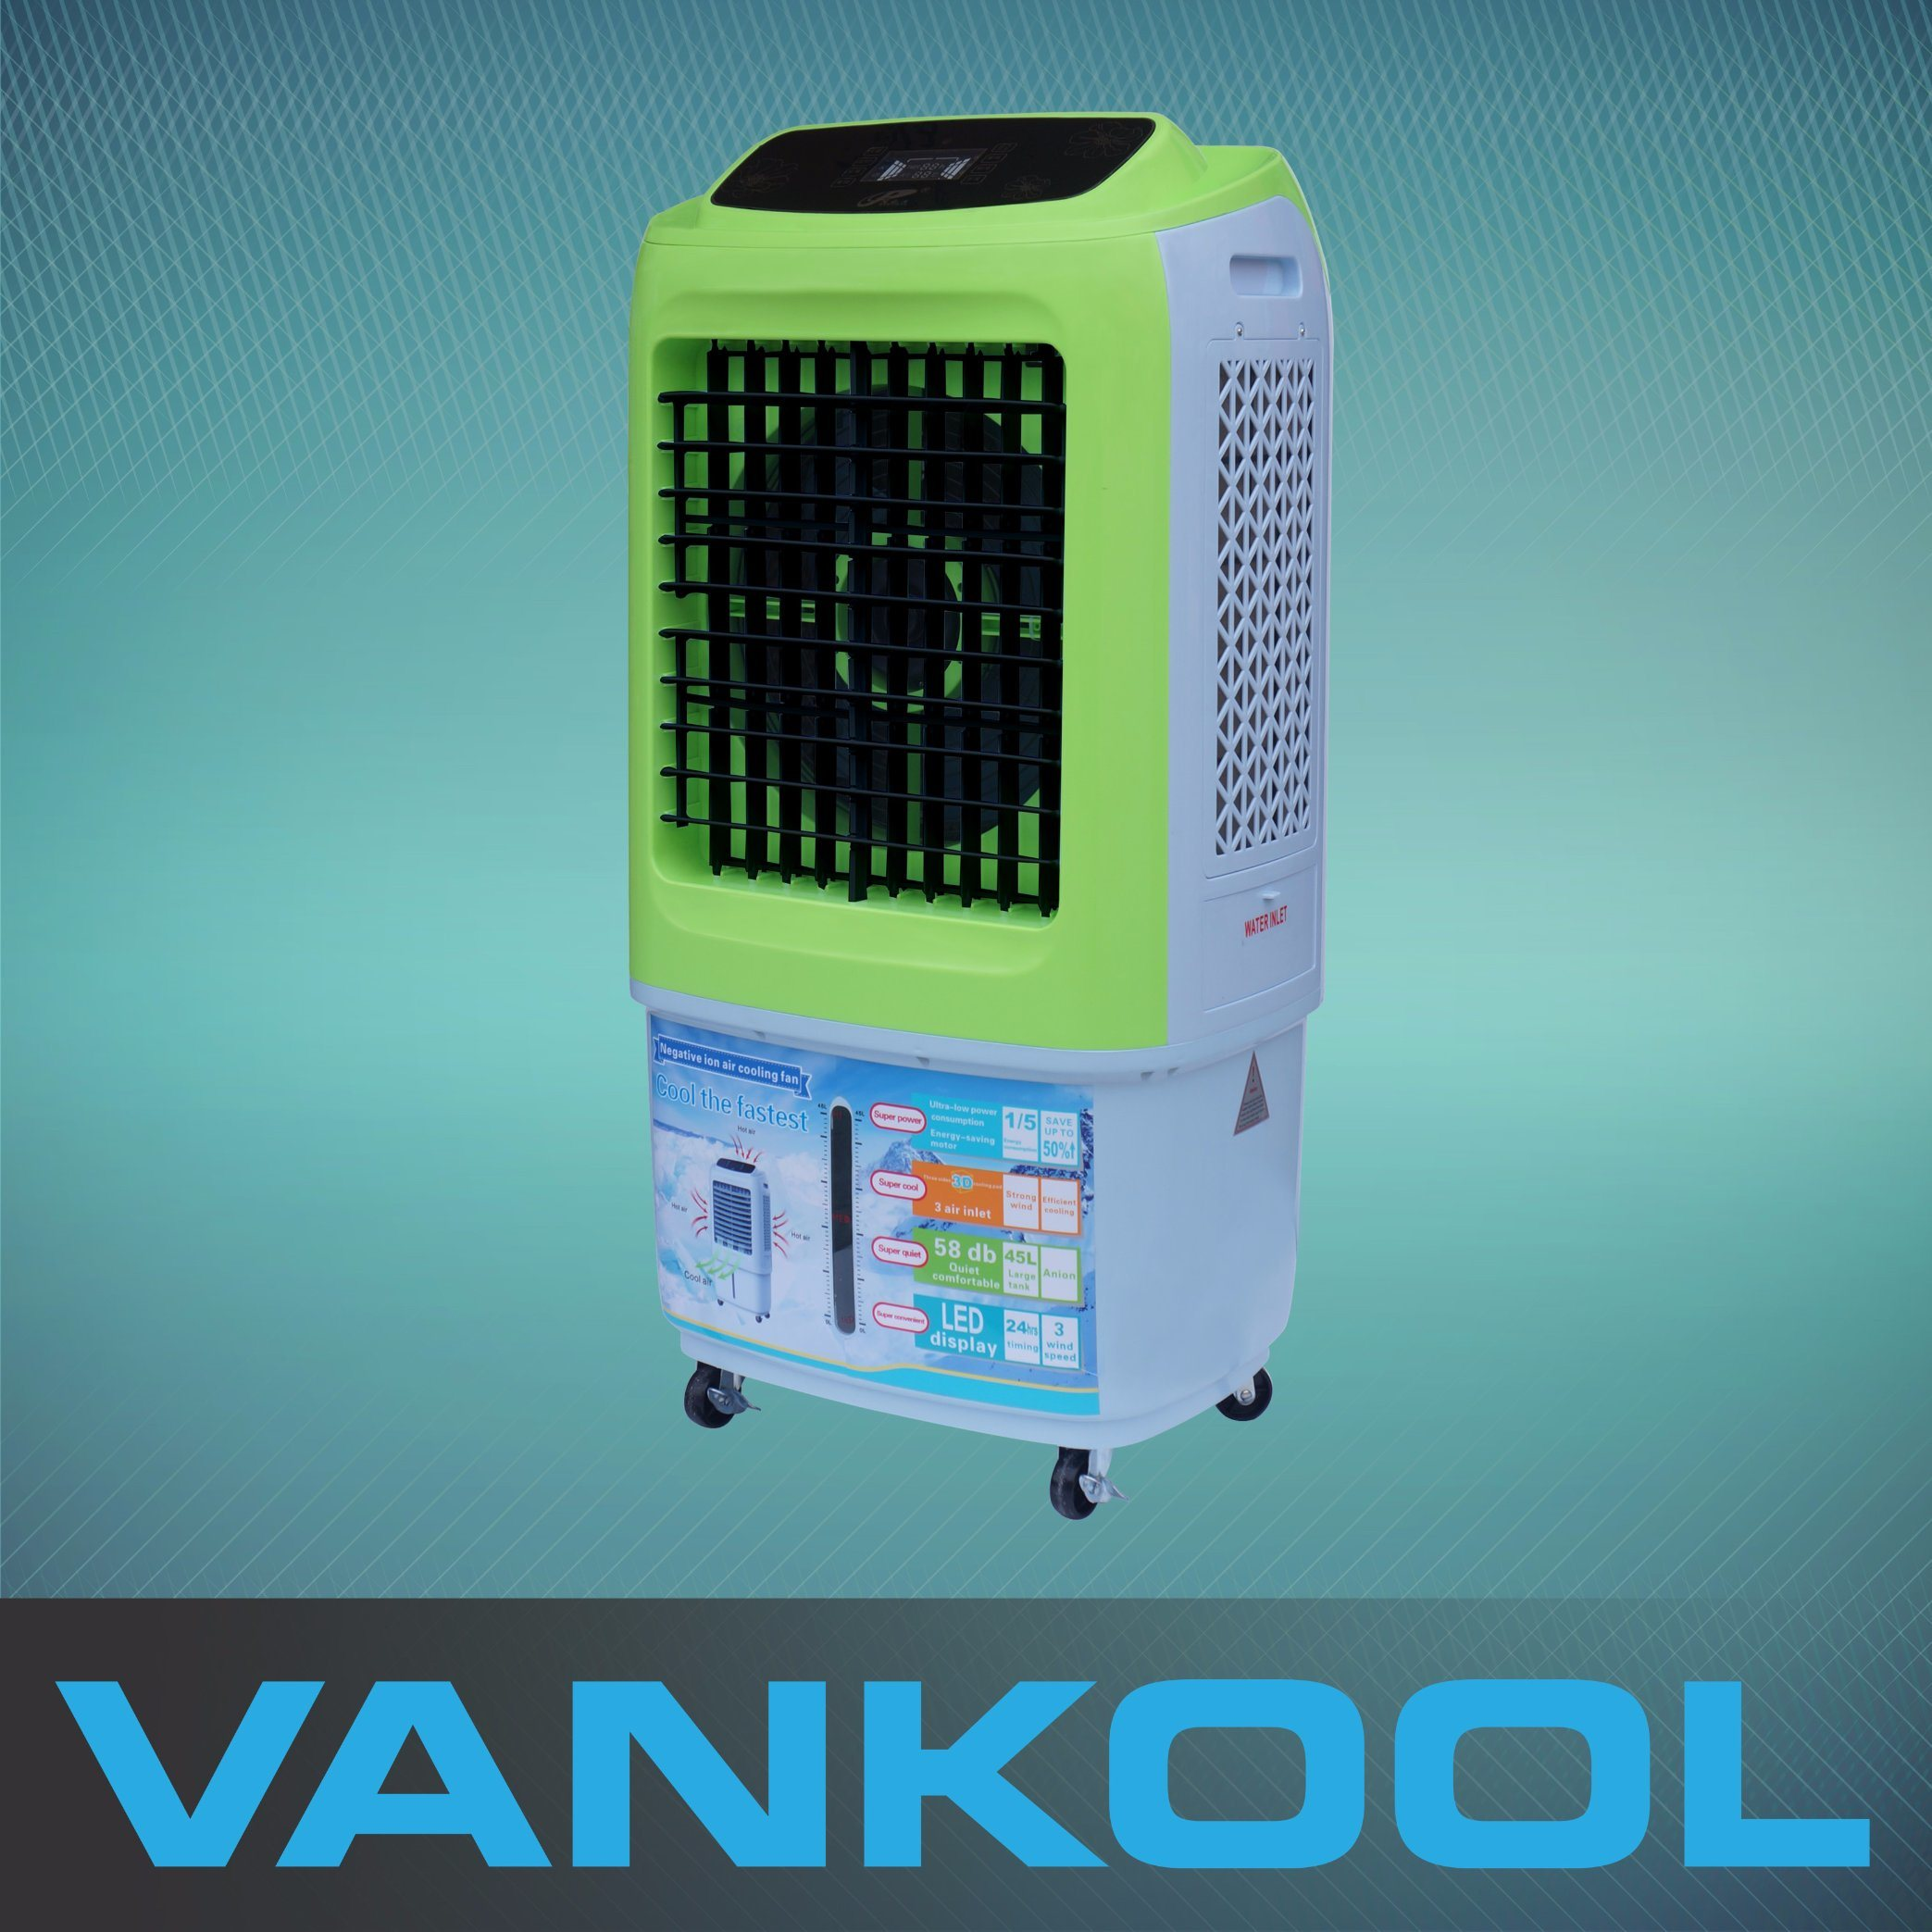 New Arrival Small Portable Swamp Cooler Hot Sales in Iraq with 3500m3h Airflow